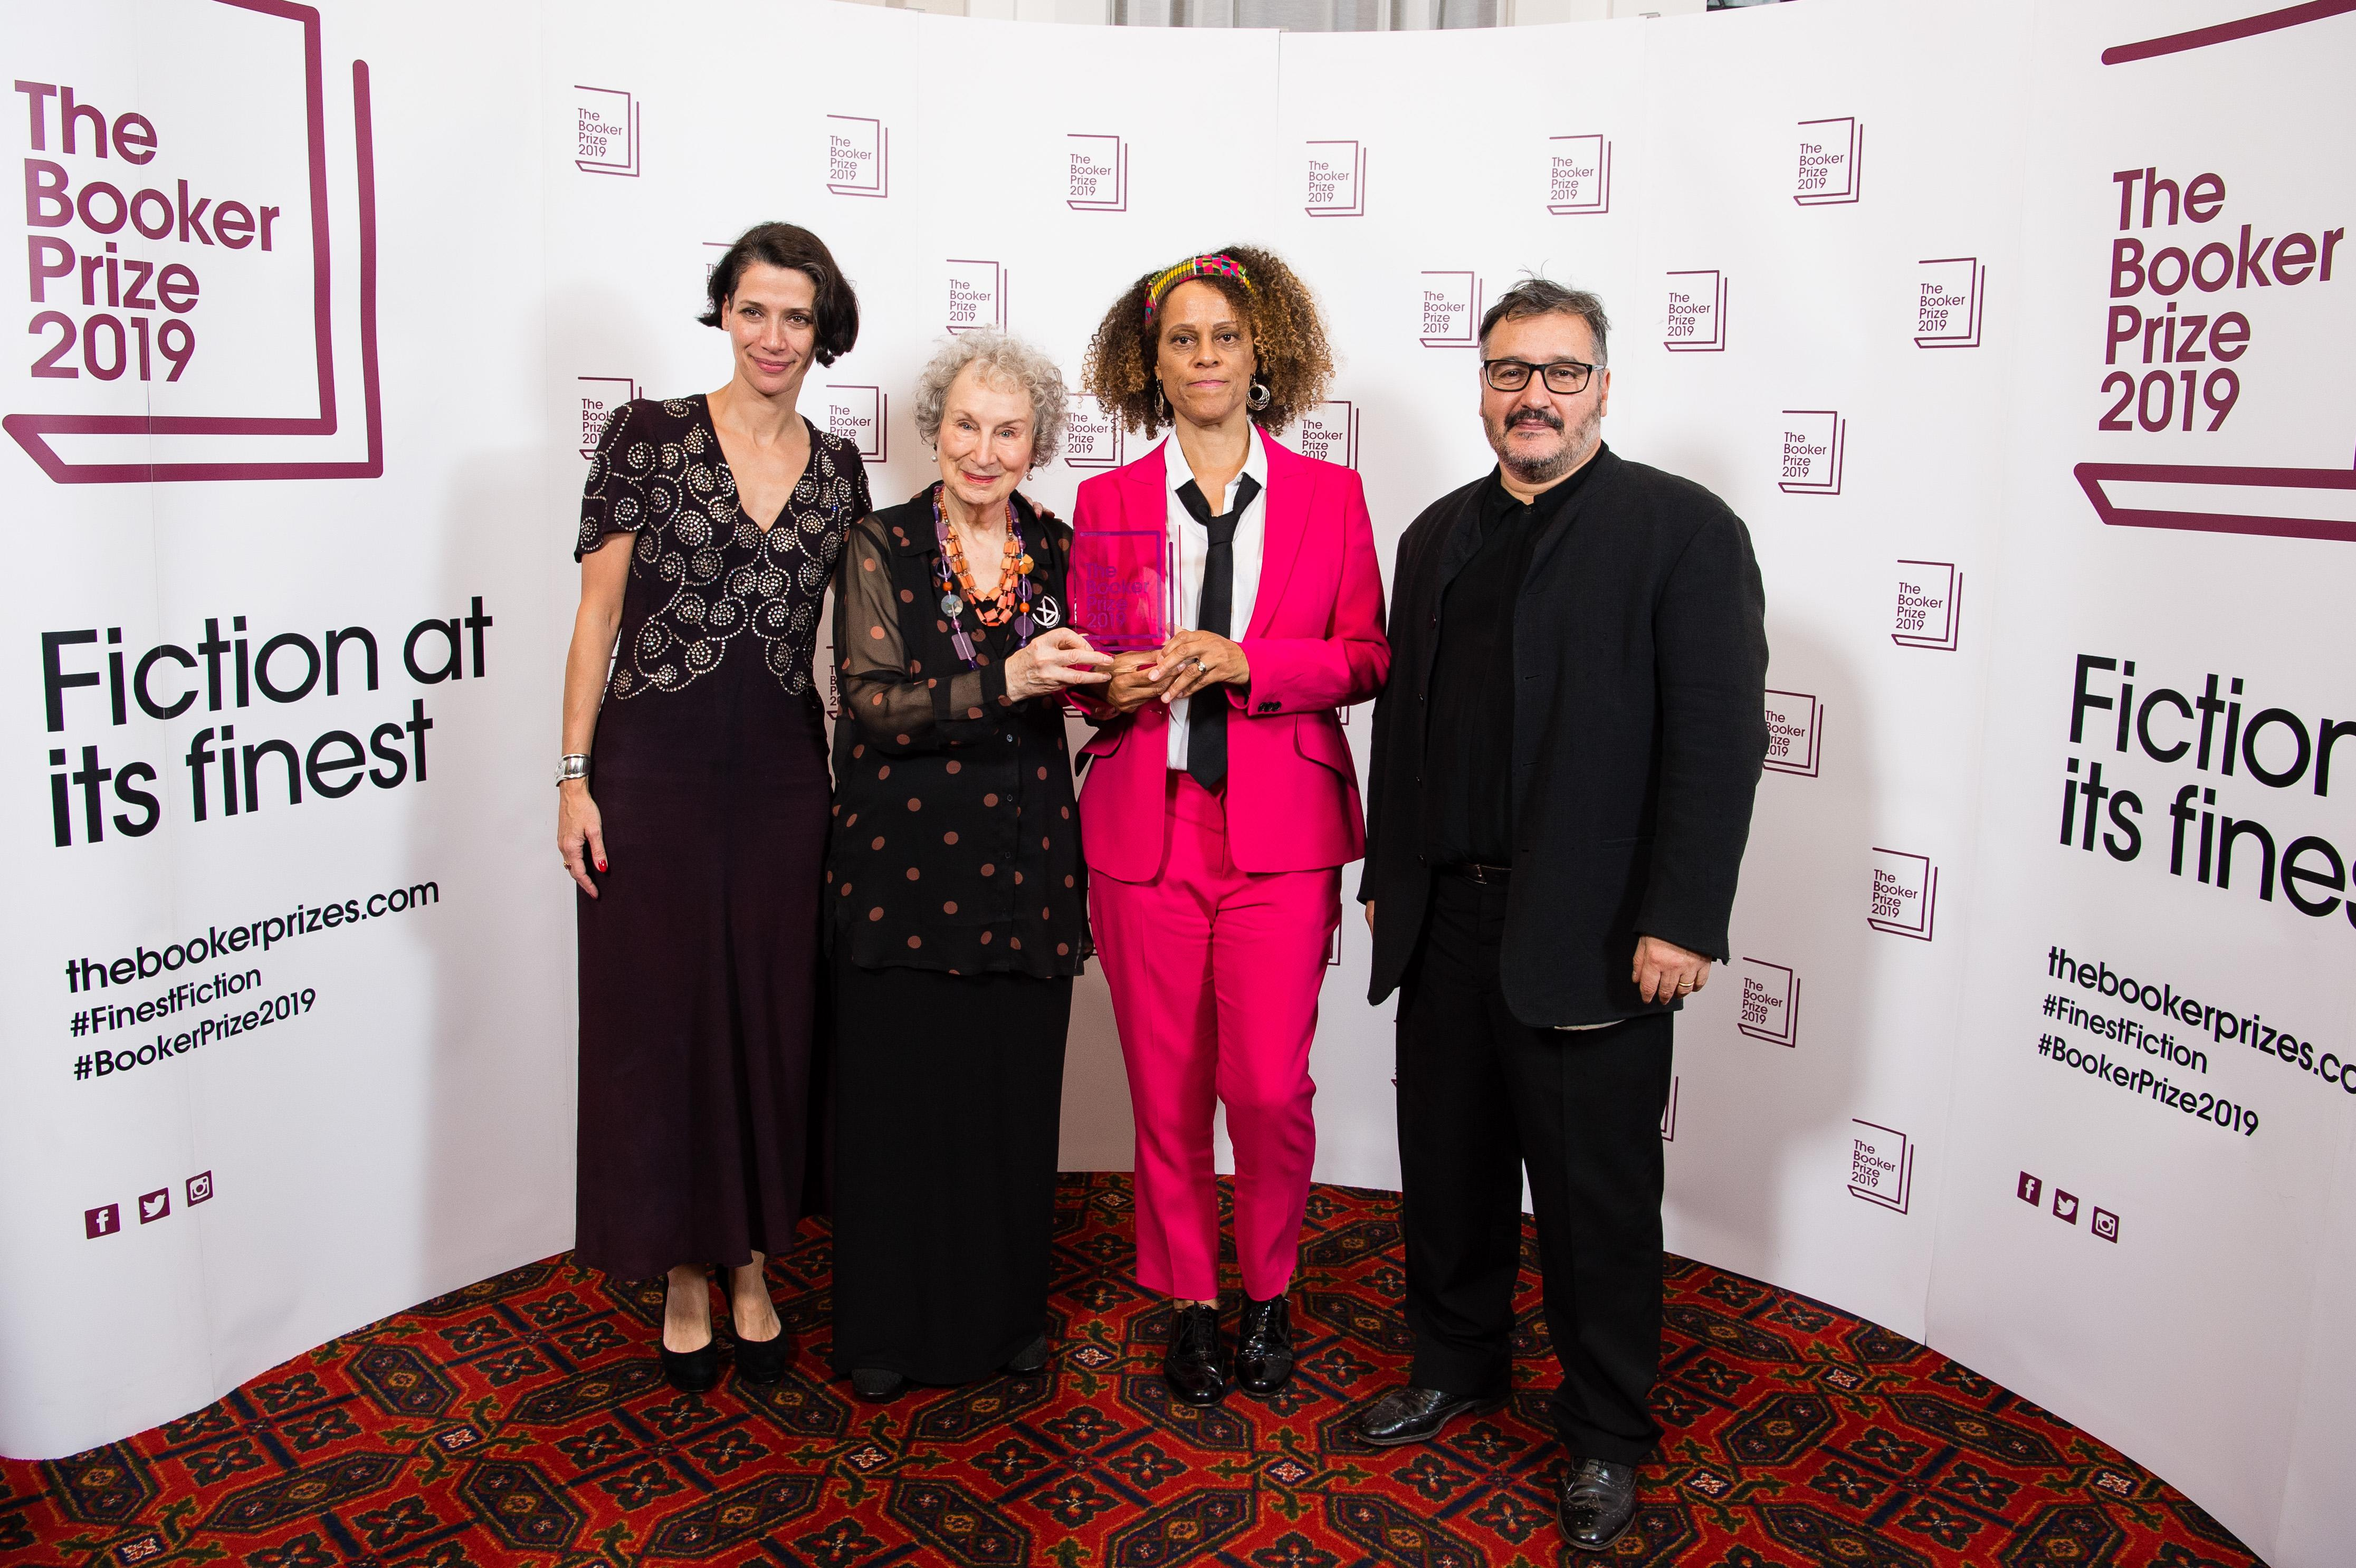 LONDON, ENGLAND - OCTOBER 14: (L-R) Gaby Wood (Literary Director Booker Prize), Margaret Atwood, Bernardine Evaristo and Peter Florence (Chair of Judges) during 2019 Booker Prize Winner Announcement photocall at Guildhall on October 14, 2019 in London, England. (Photo by Jeff Spicer/Getty Images)